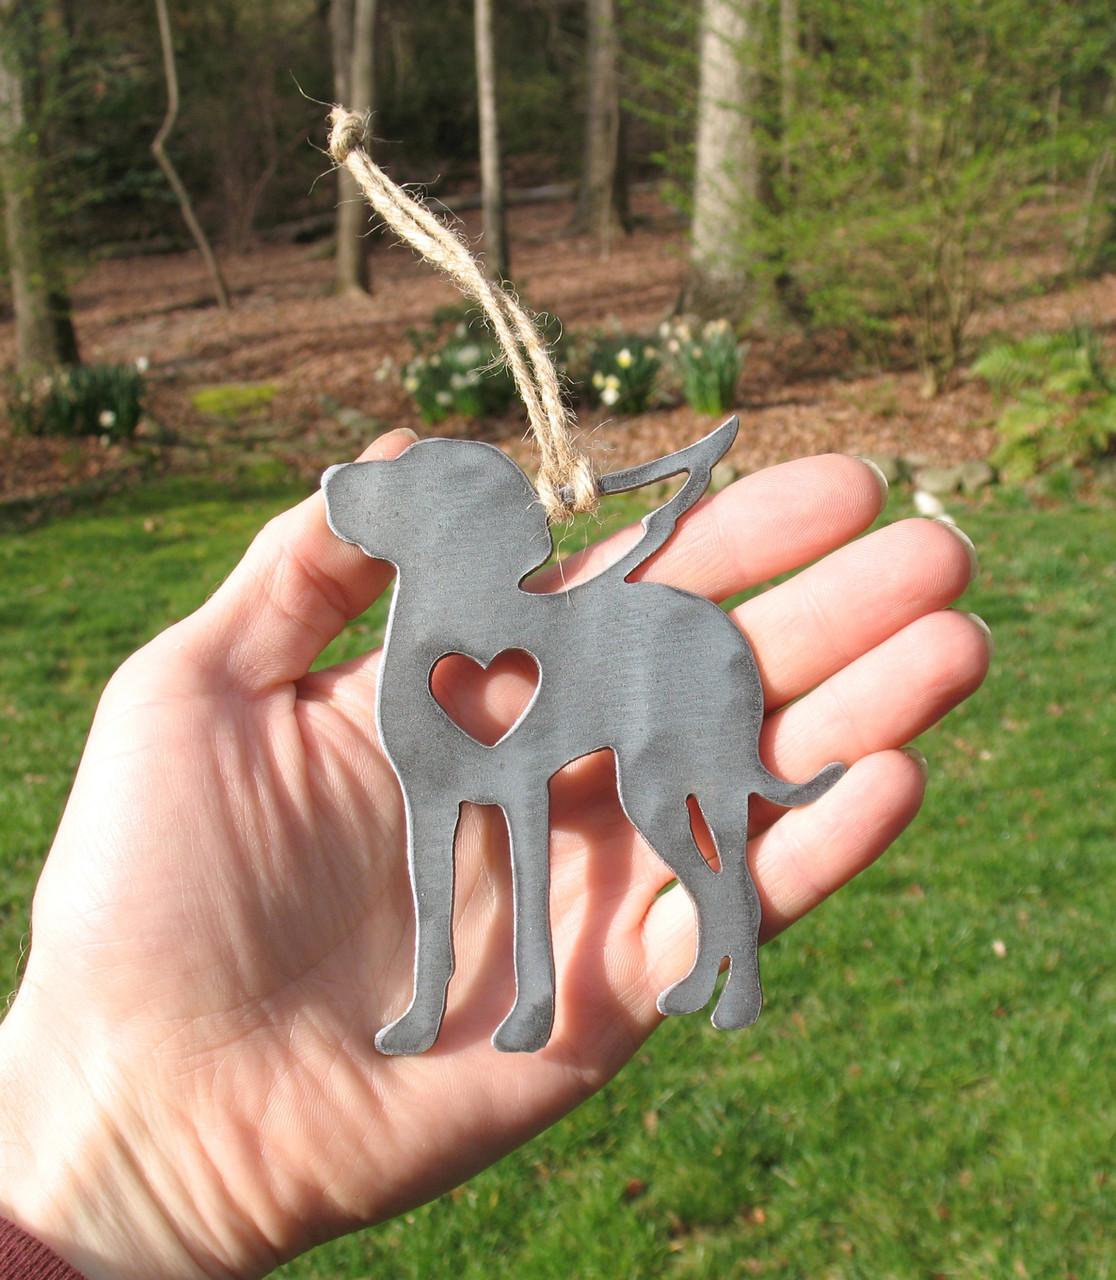 Weimaraner Dog Ornament 2 Pet Memorial W/ Angel Wings - Pet Loss Dog Sympathy Remembrance Gift - Metal Dog Christmas Ornament